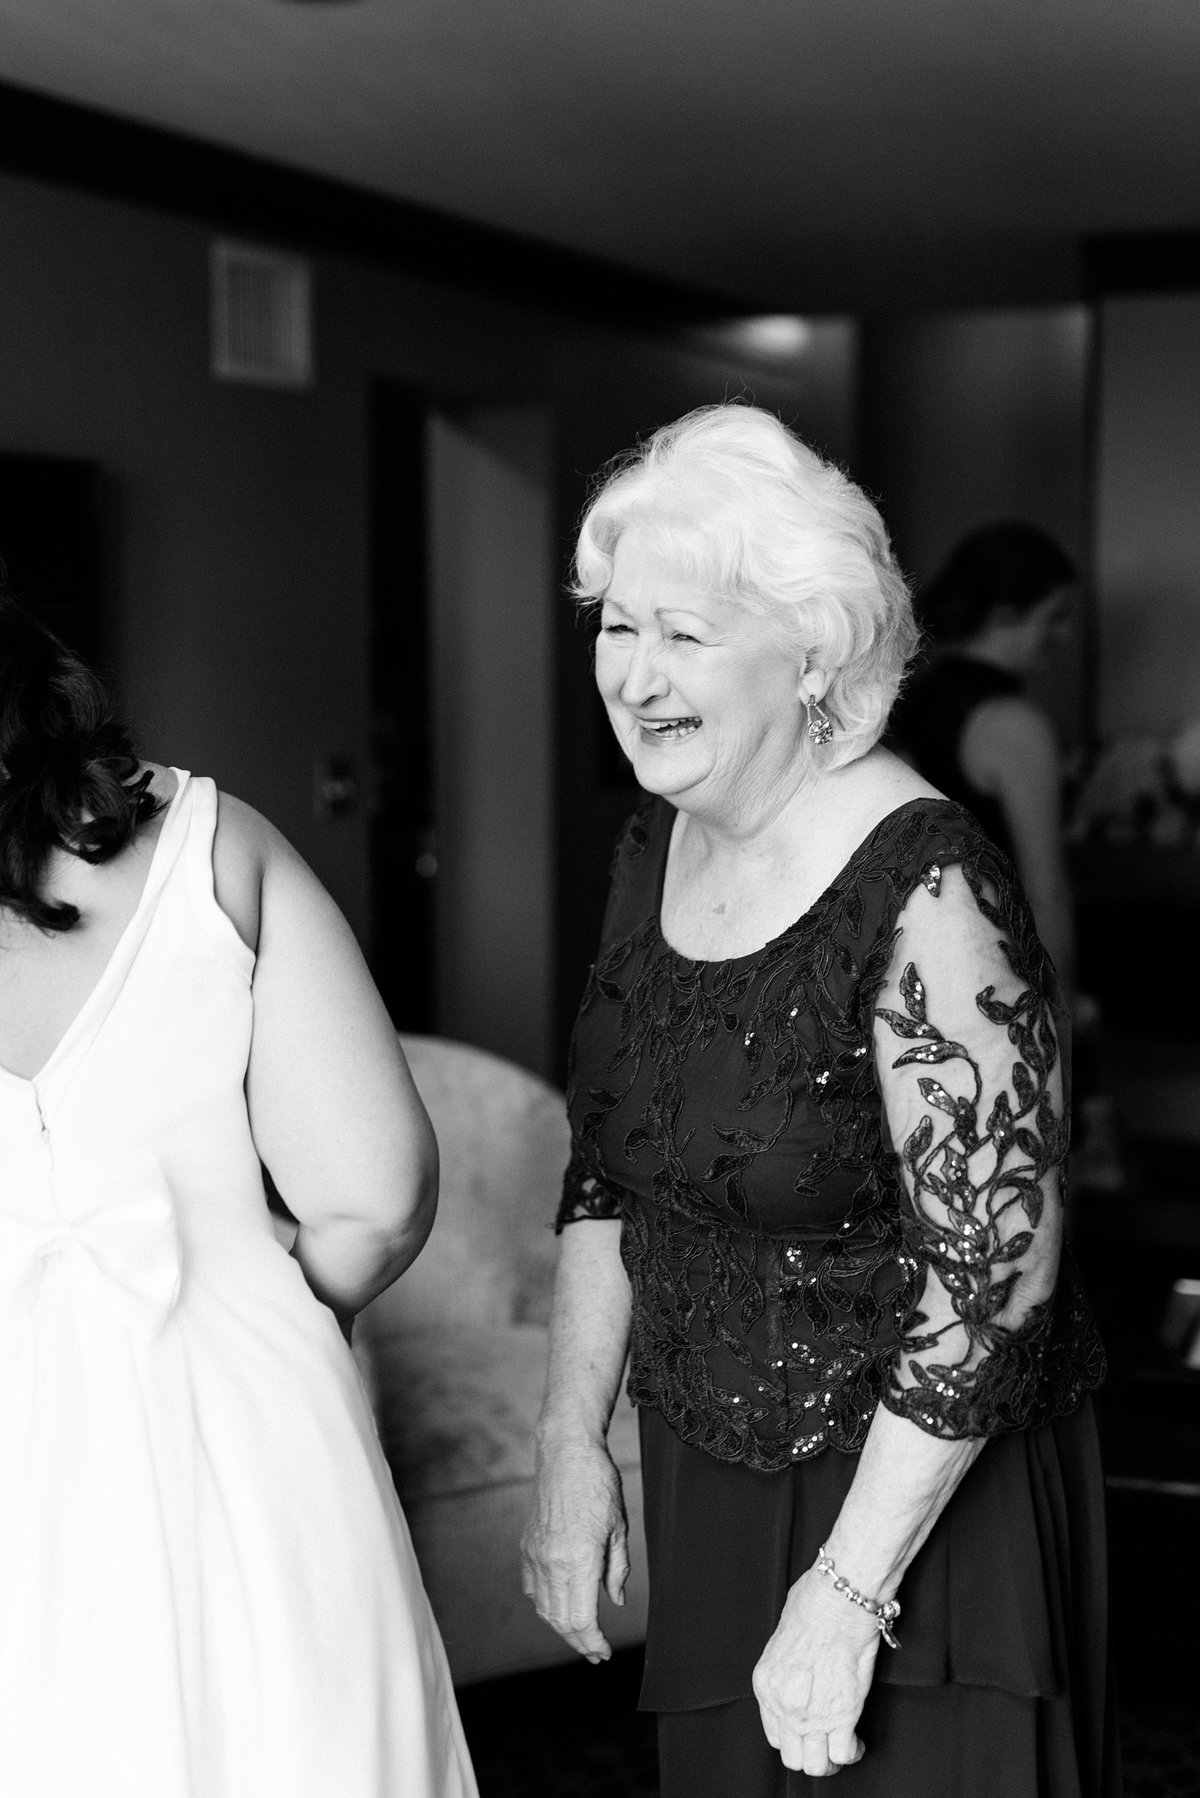 Rachel-Matt-Inn-at-St-Johns-Wedding-Michigan-Breanne-Rochelle-Photography49